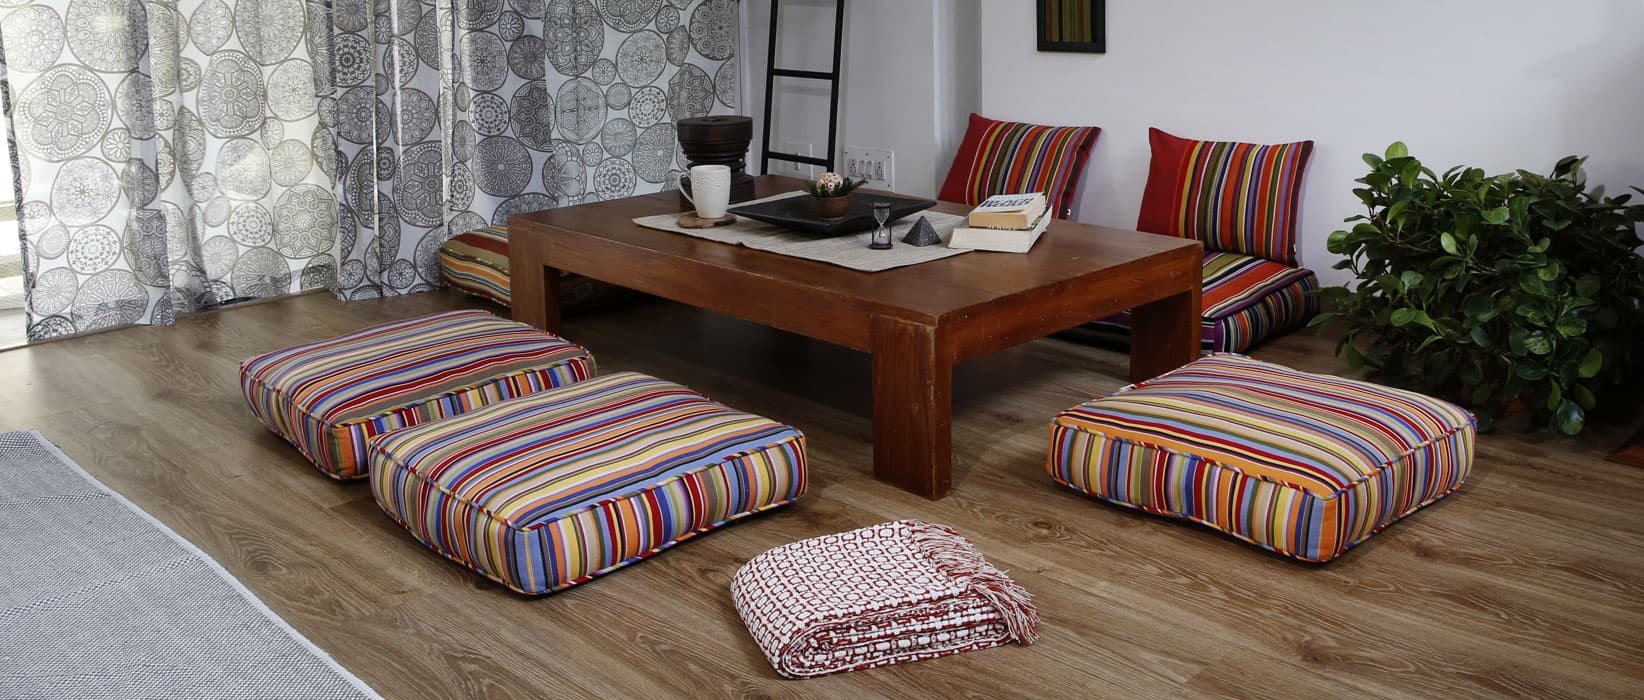 Buy Cotton Home Furnishings Online 100 Pure Cotton